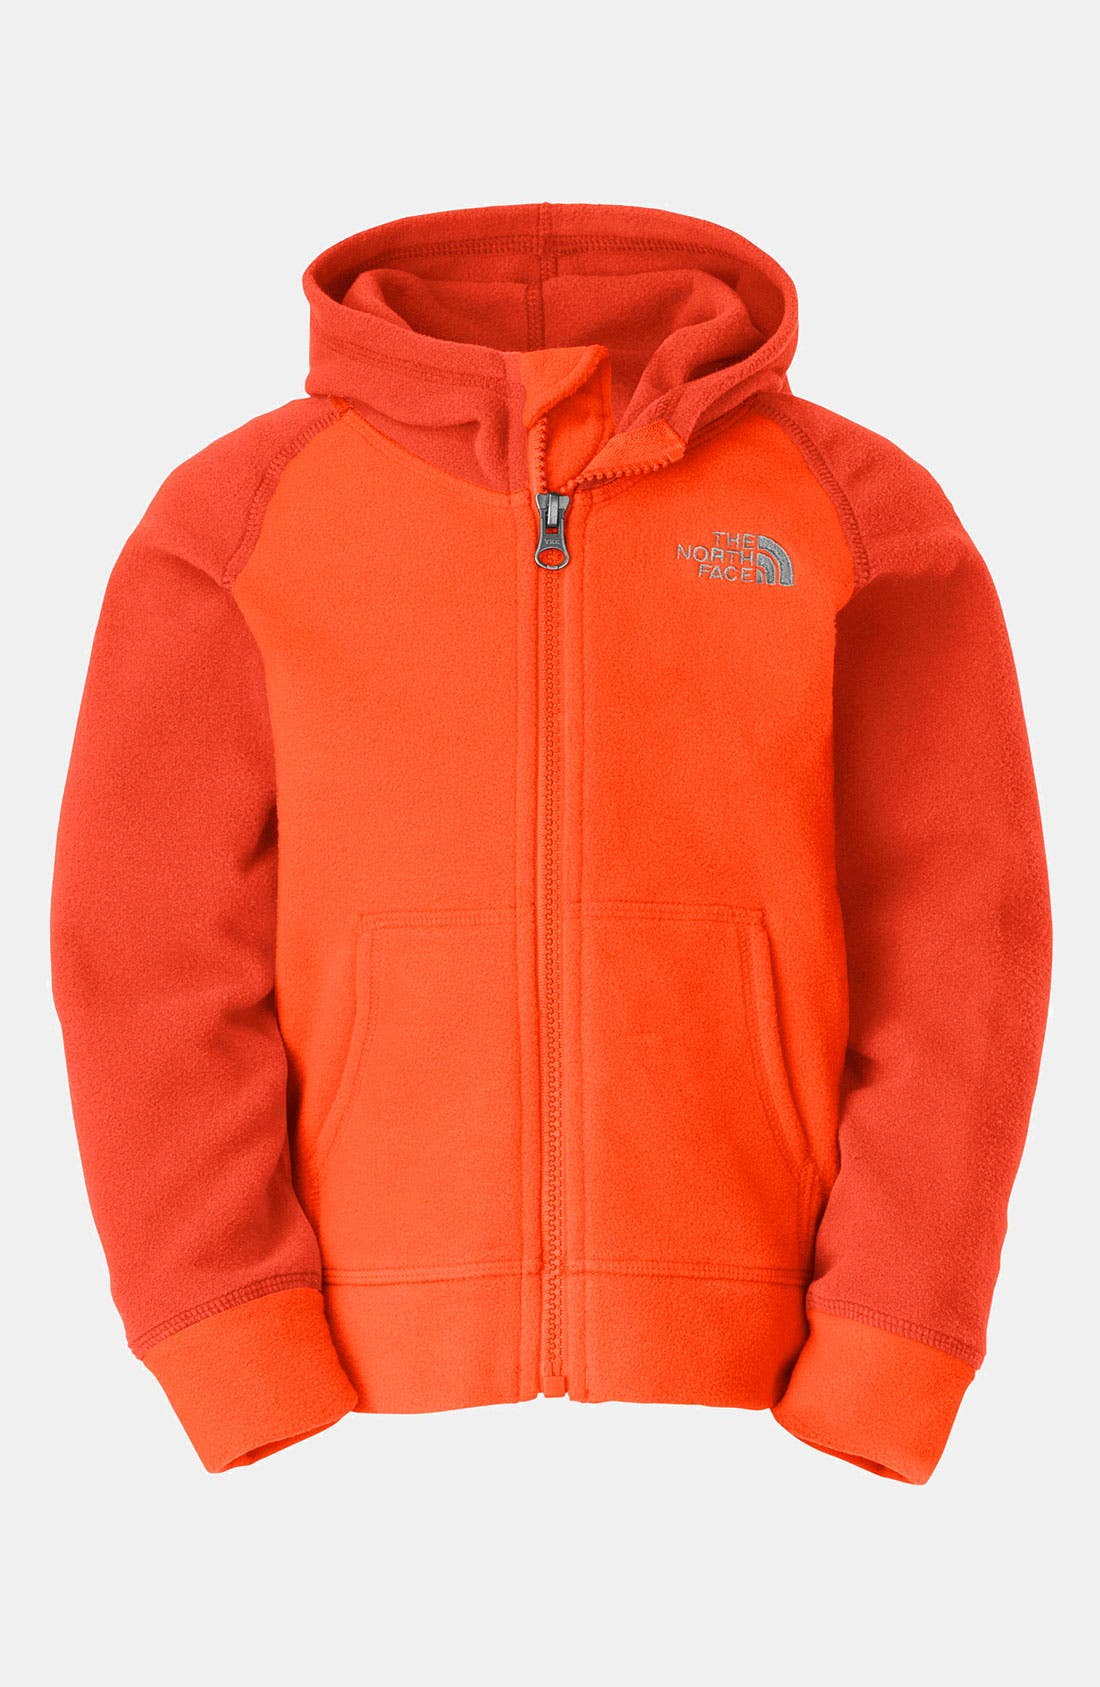 Main Image - The North Face 'Glacier' Hoodie (Toddler)